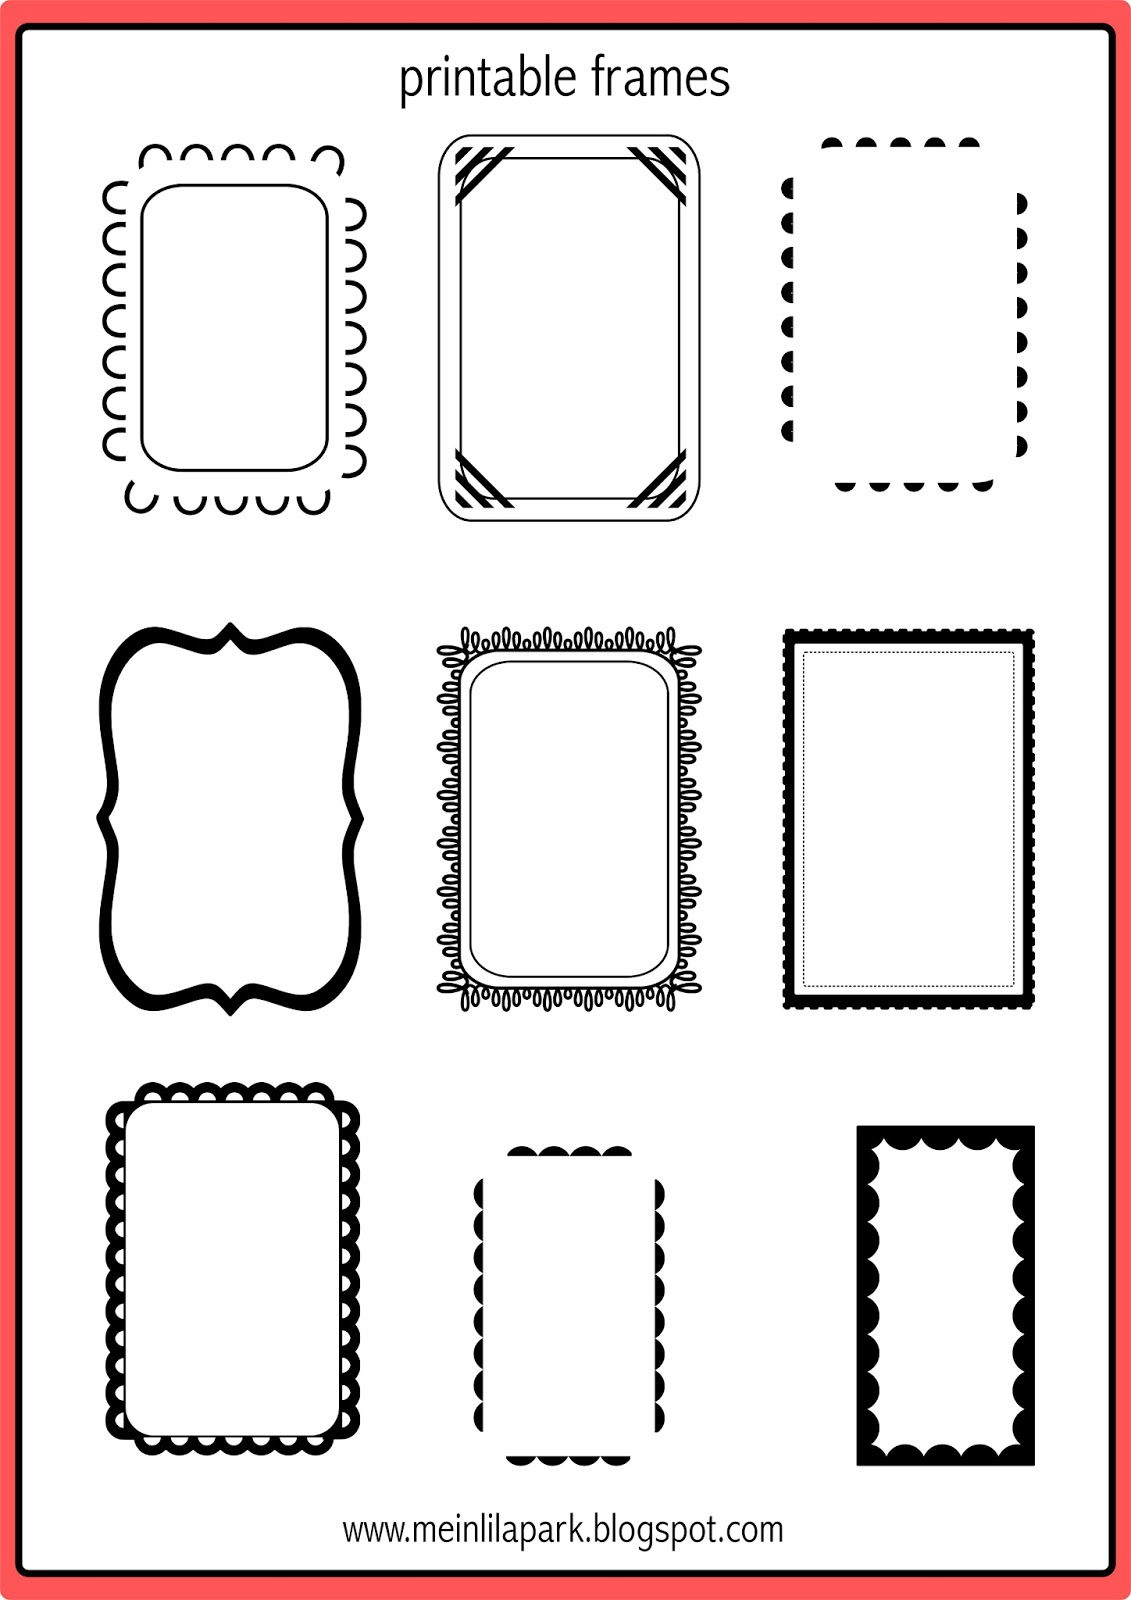 Free Printable Doodle Frames  Bullet Journal Template. Wedding Invitations Midlands Ireland. Apps For Diy Wedding Invitations. Wedding Stuff Online Shop. Pinterest Wood Wedding Invitations. Wedding Photography Packages Hamilton Ontario. Documentary Wedding Photographer Glasgow. Wedding Invitations Cards Kenya. Wedding Rentals Hawaii